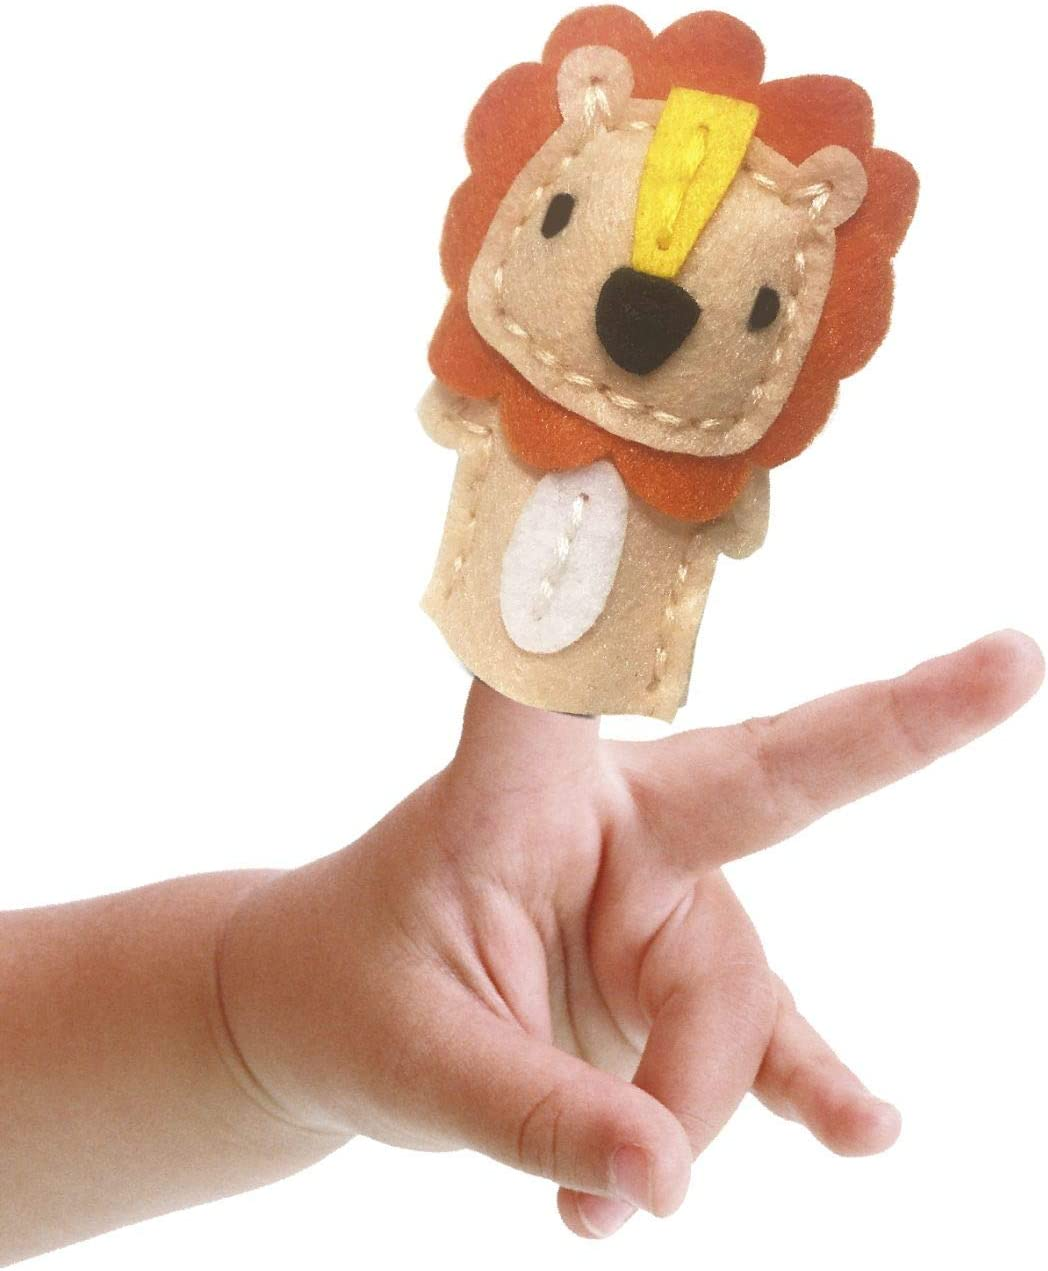 Mammut 164003 Sewing Set Finger Puppet Animal Lion Complete Set with Pre-Cut Felt Fabrics Filling Cotton Yarn Darning Needle and Instructions for Children from 5 Years Multi-Coloured